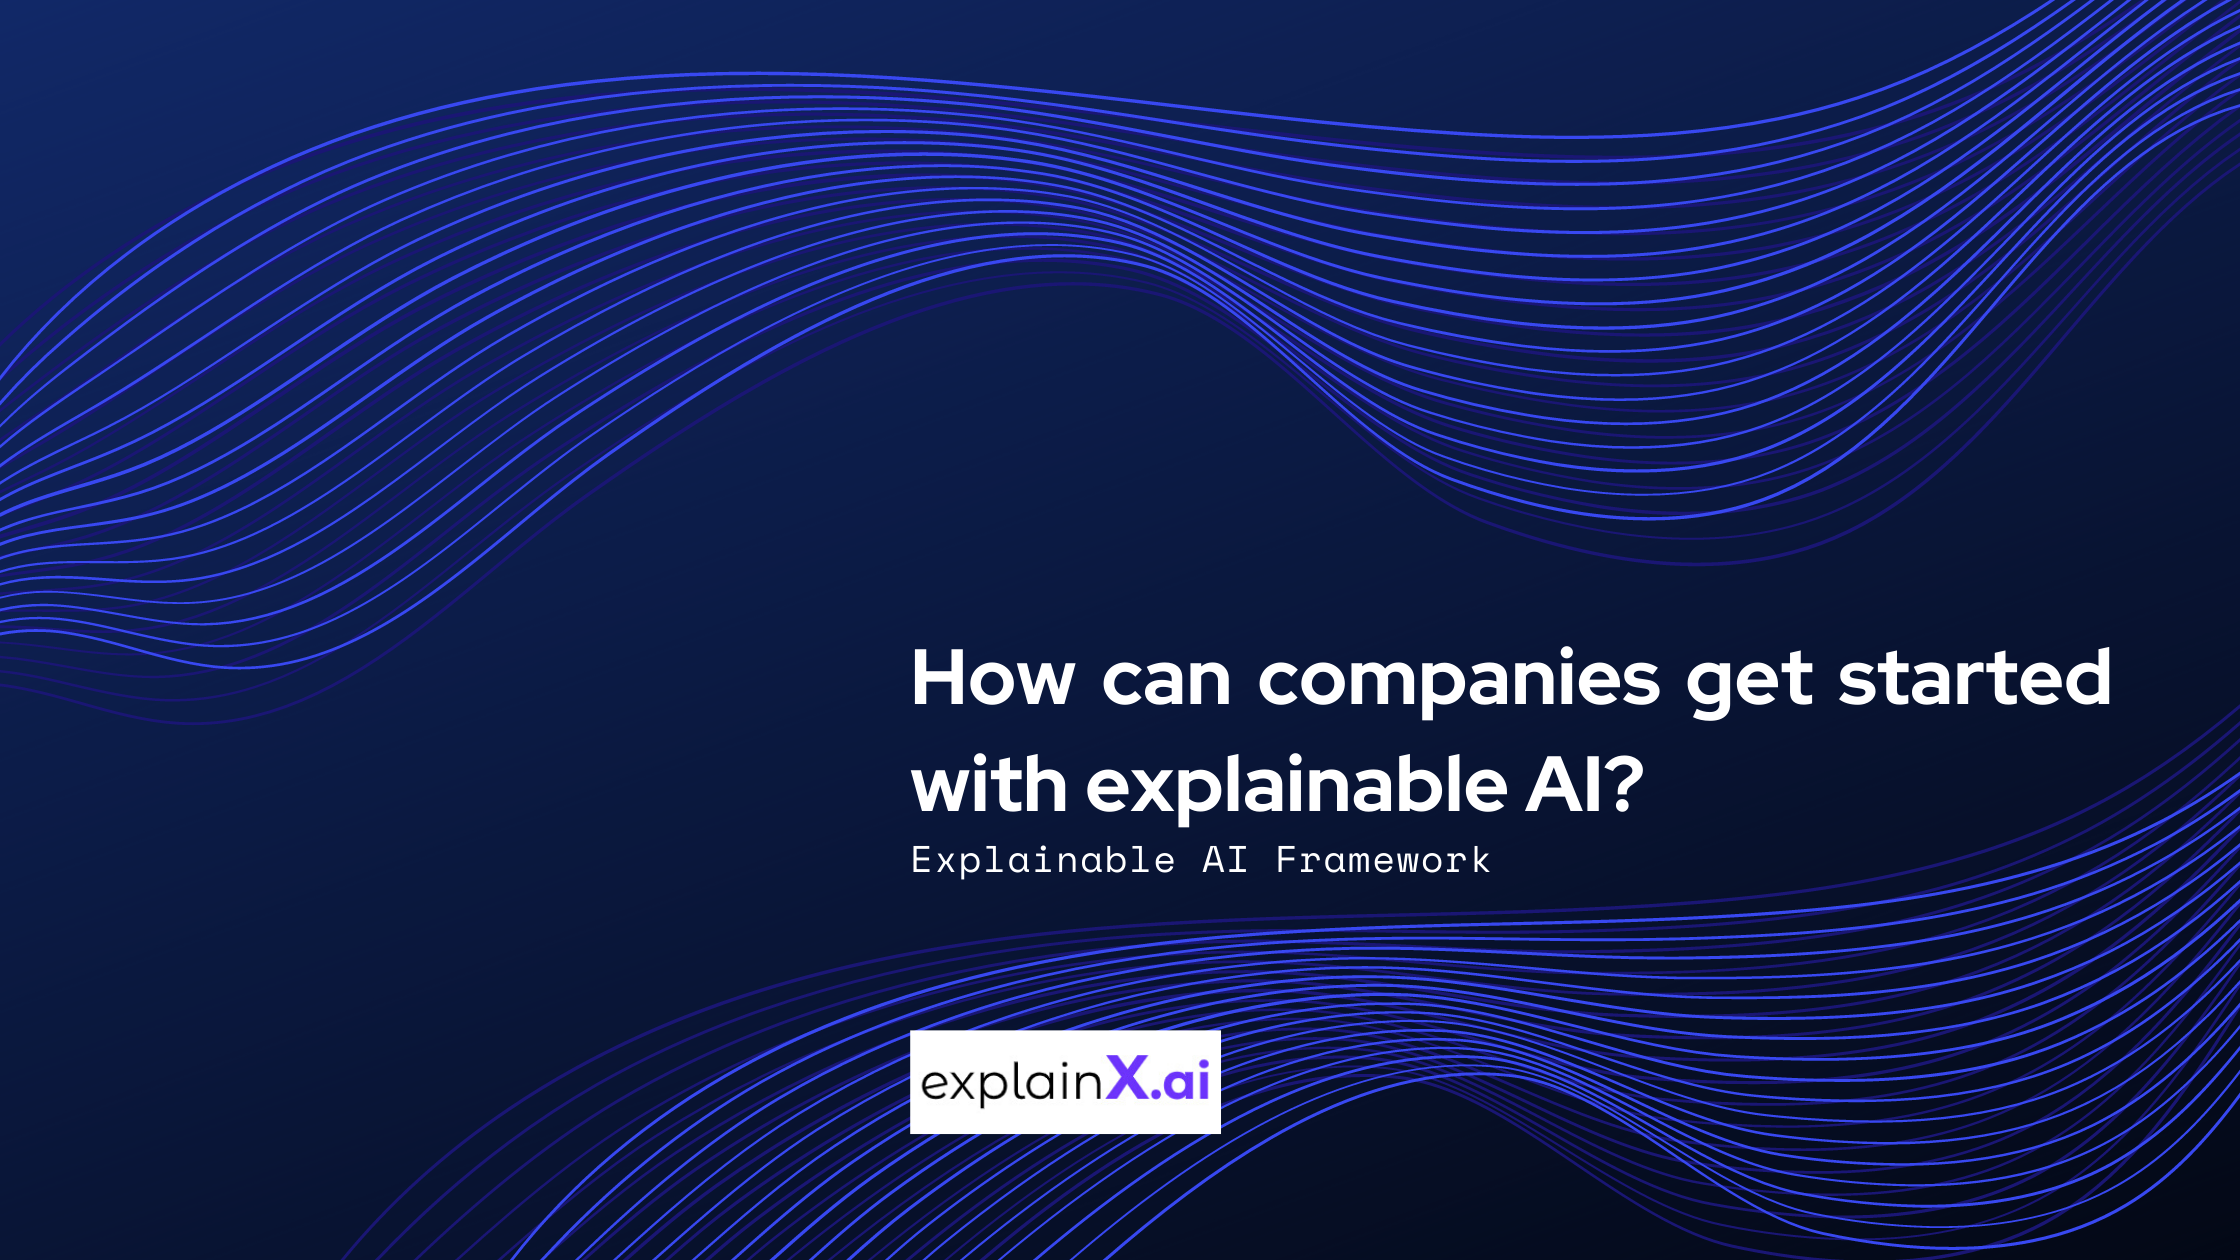 Learn how companies can implement explainable AI faster without spending tons of money